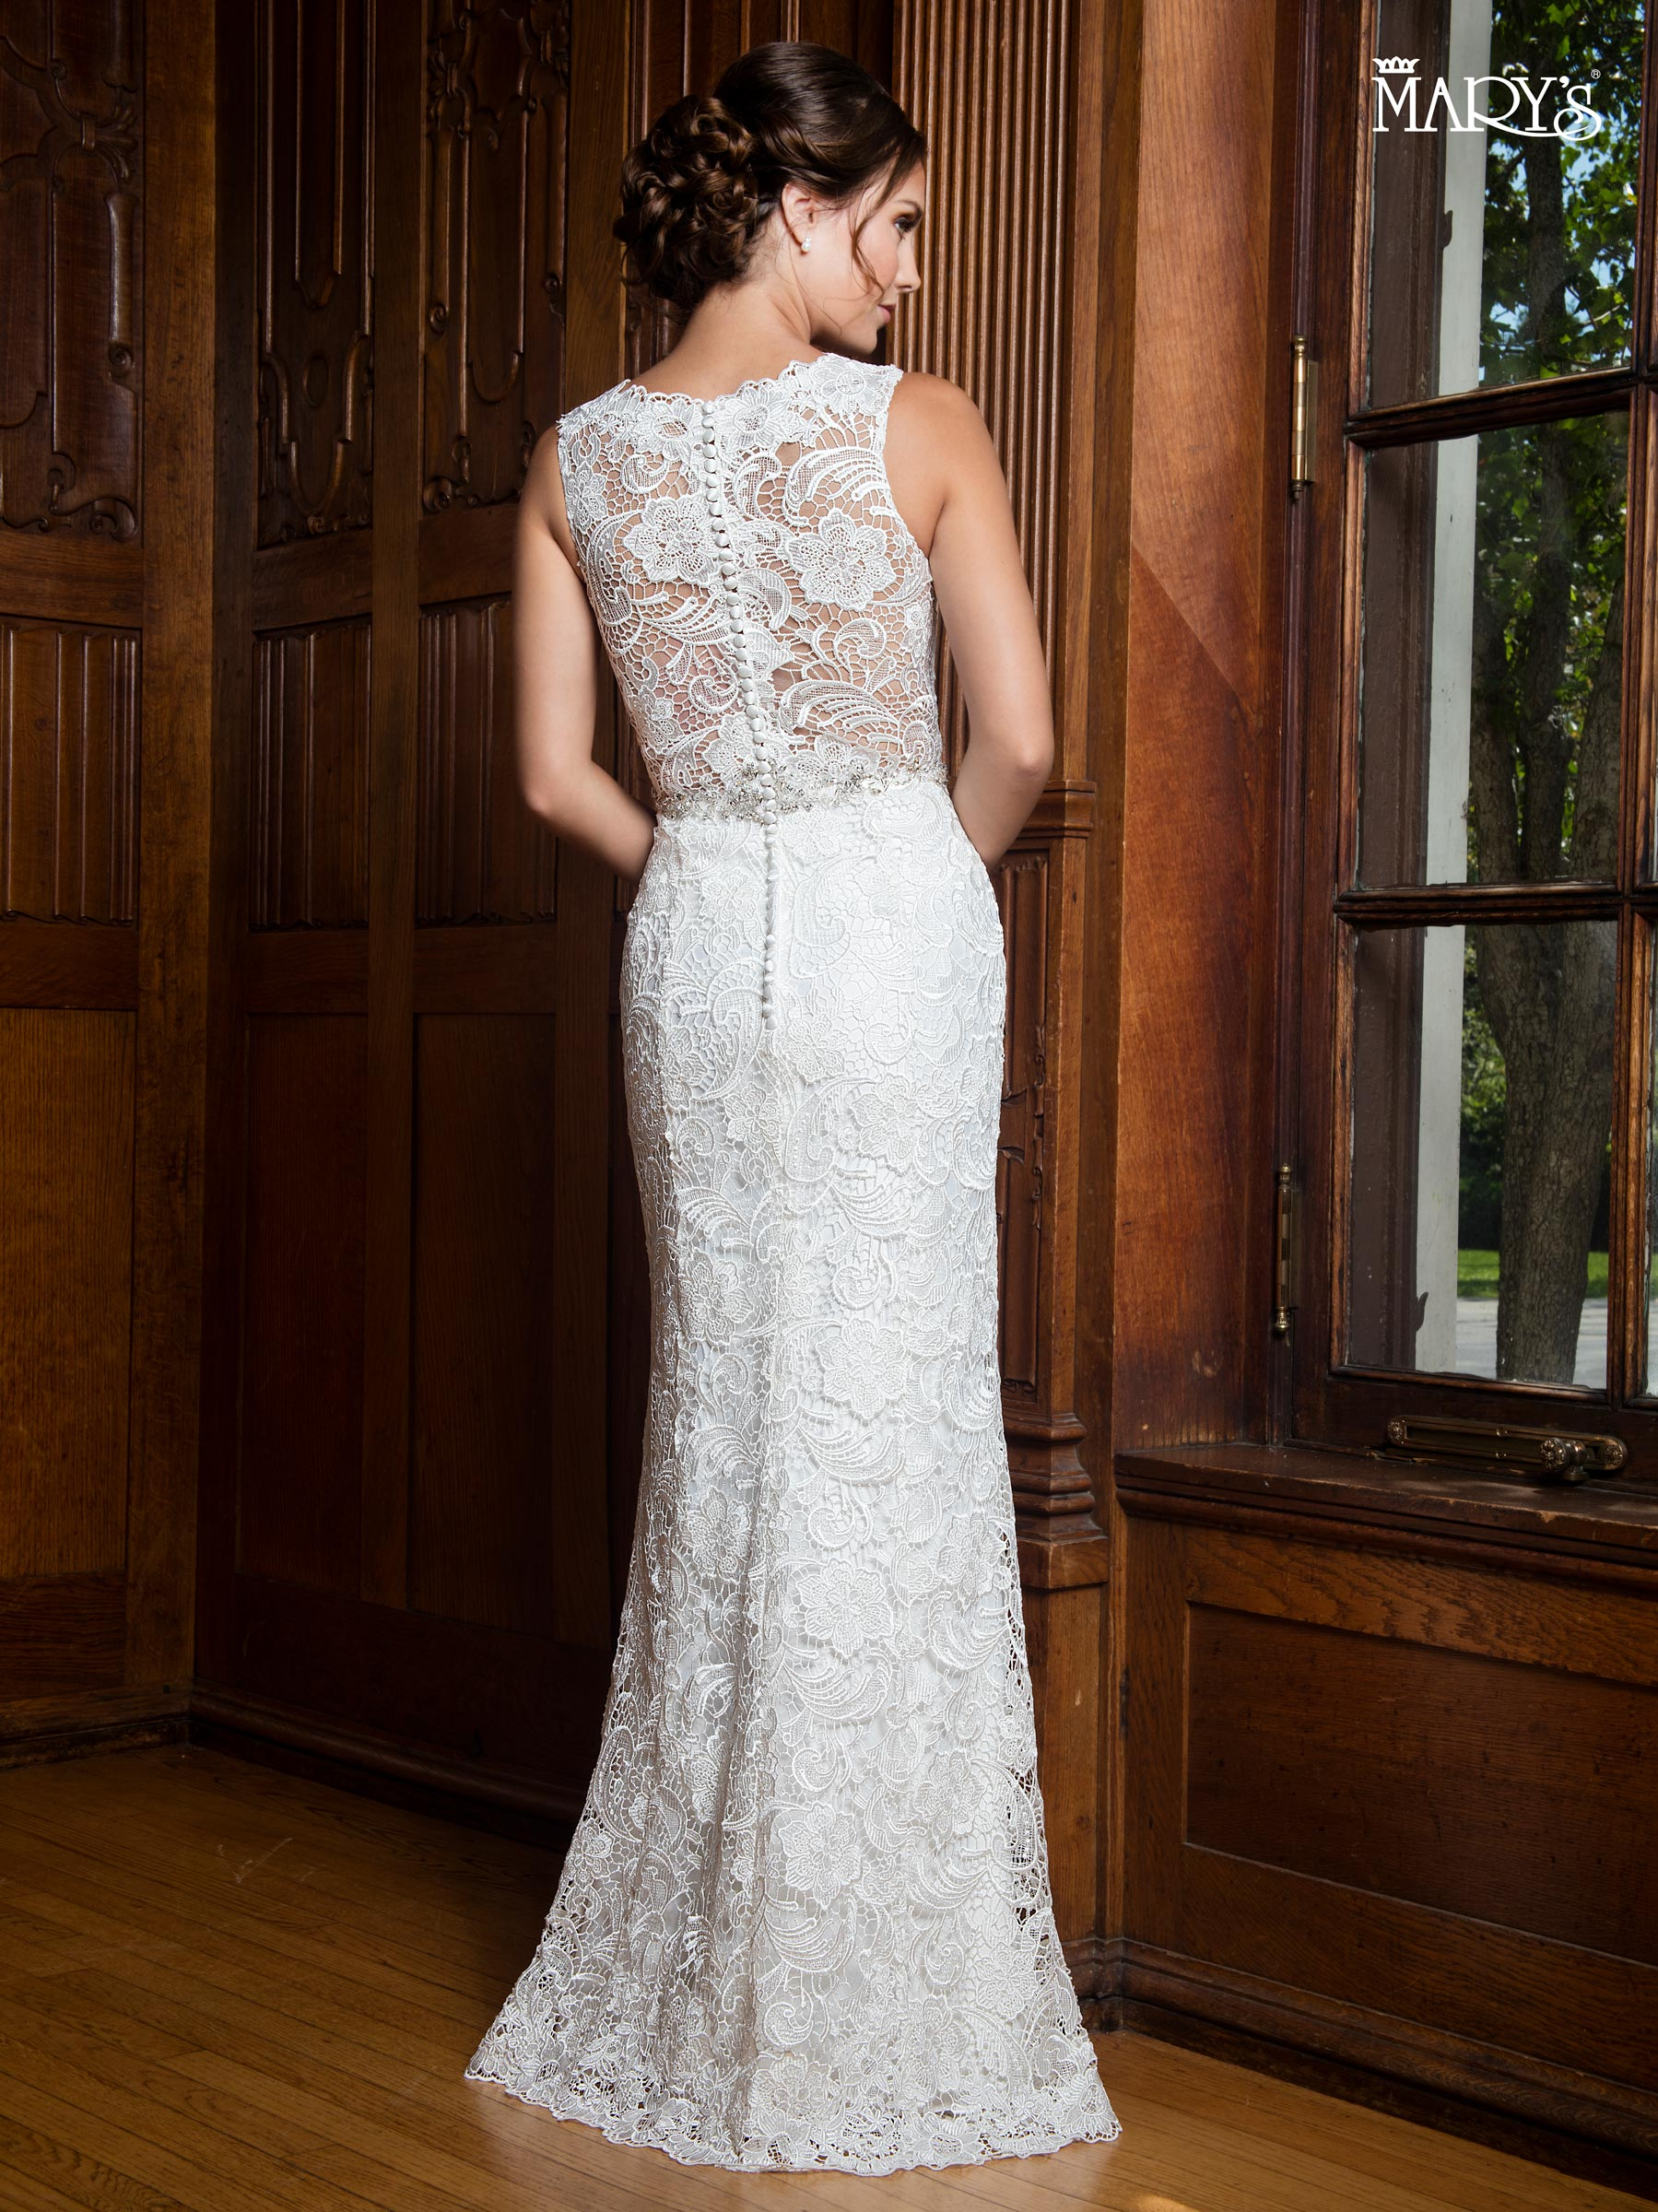 Bridal Wedding Dresses | Mary's | Style - MB1012